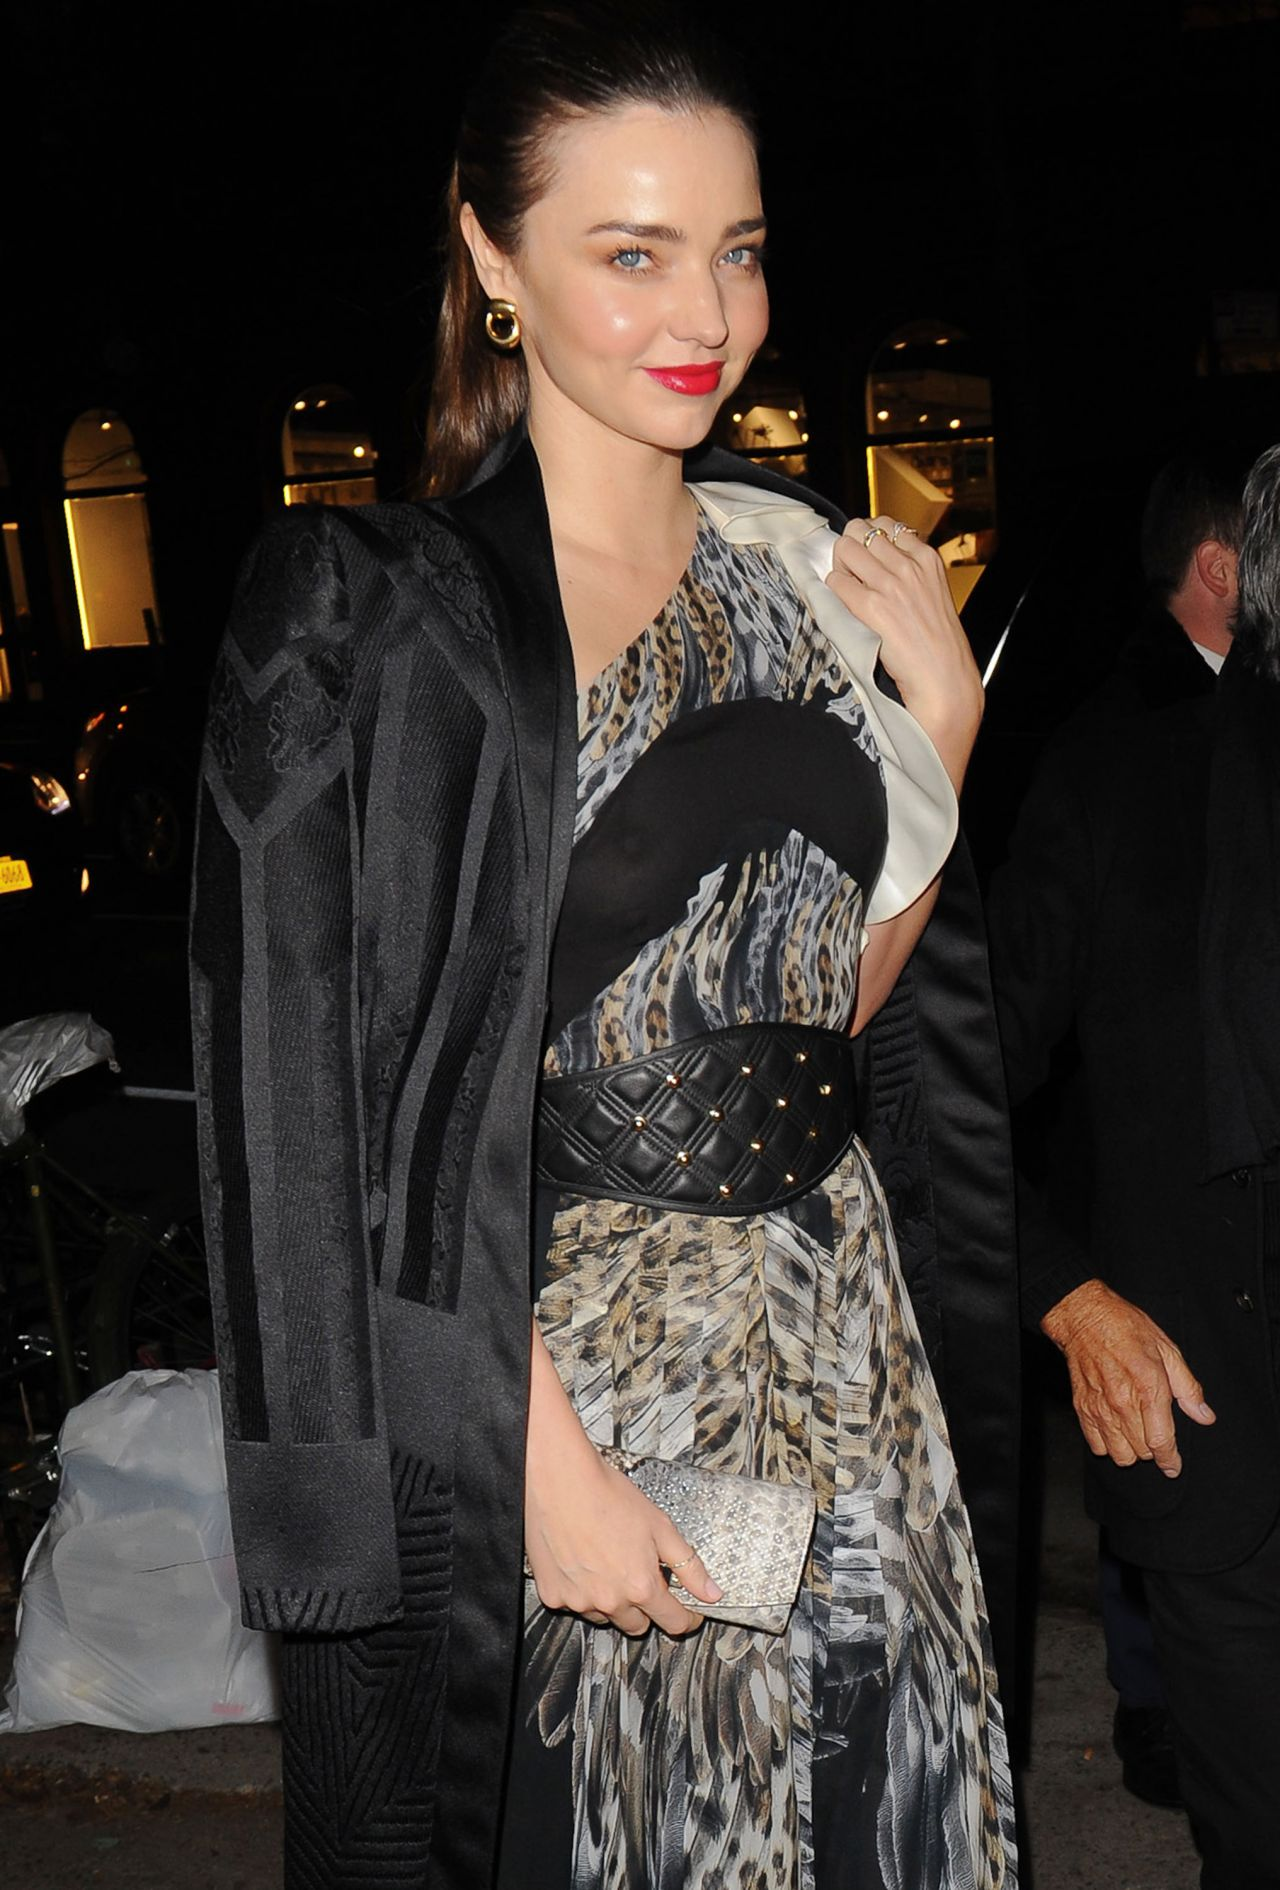 Miranda Kerr Attends Just Cavalli Soho Flagship Store Opening in New York City - December 2013